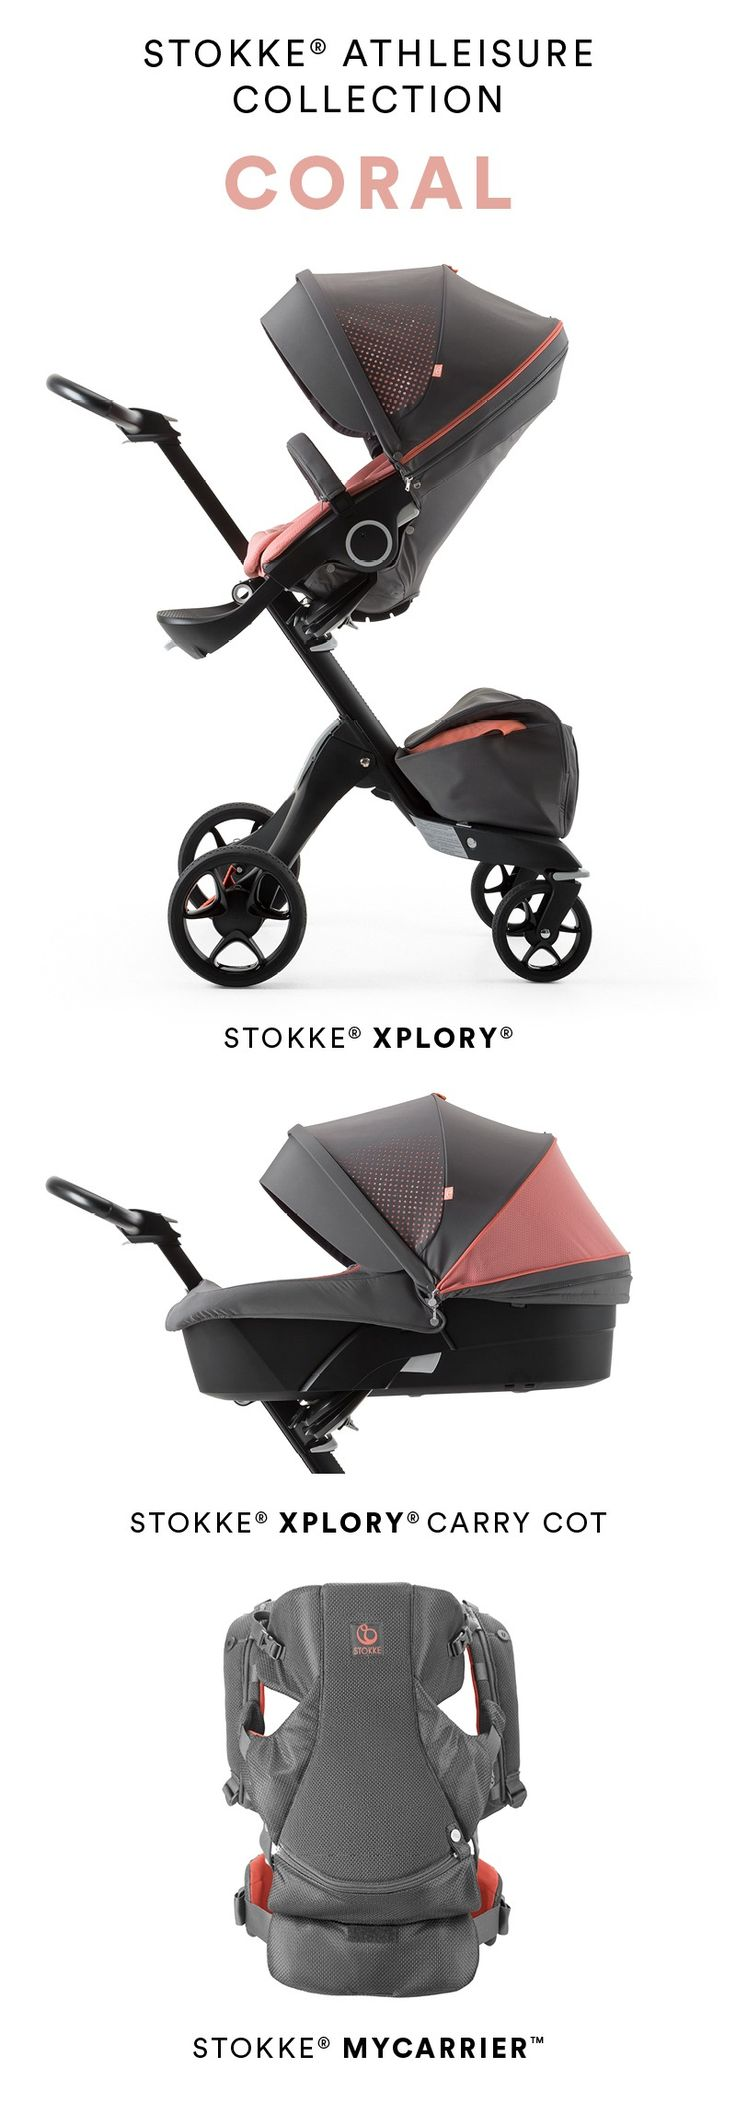 Inspired by your active lifestyle as parents, breathable, technical fabrics have been carefully selected for their wicking and quick-dry properties to outfit our Stokke Athleisure Collection Xplory, MyCarrier and Carry Cot. Shop Coral (pictured) and Marina Blue now